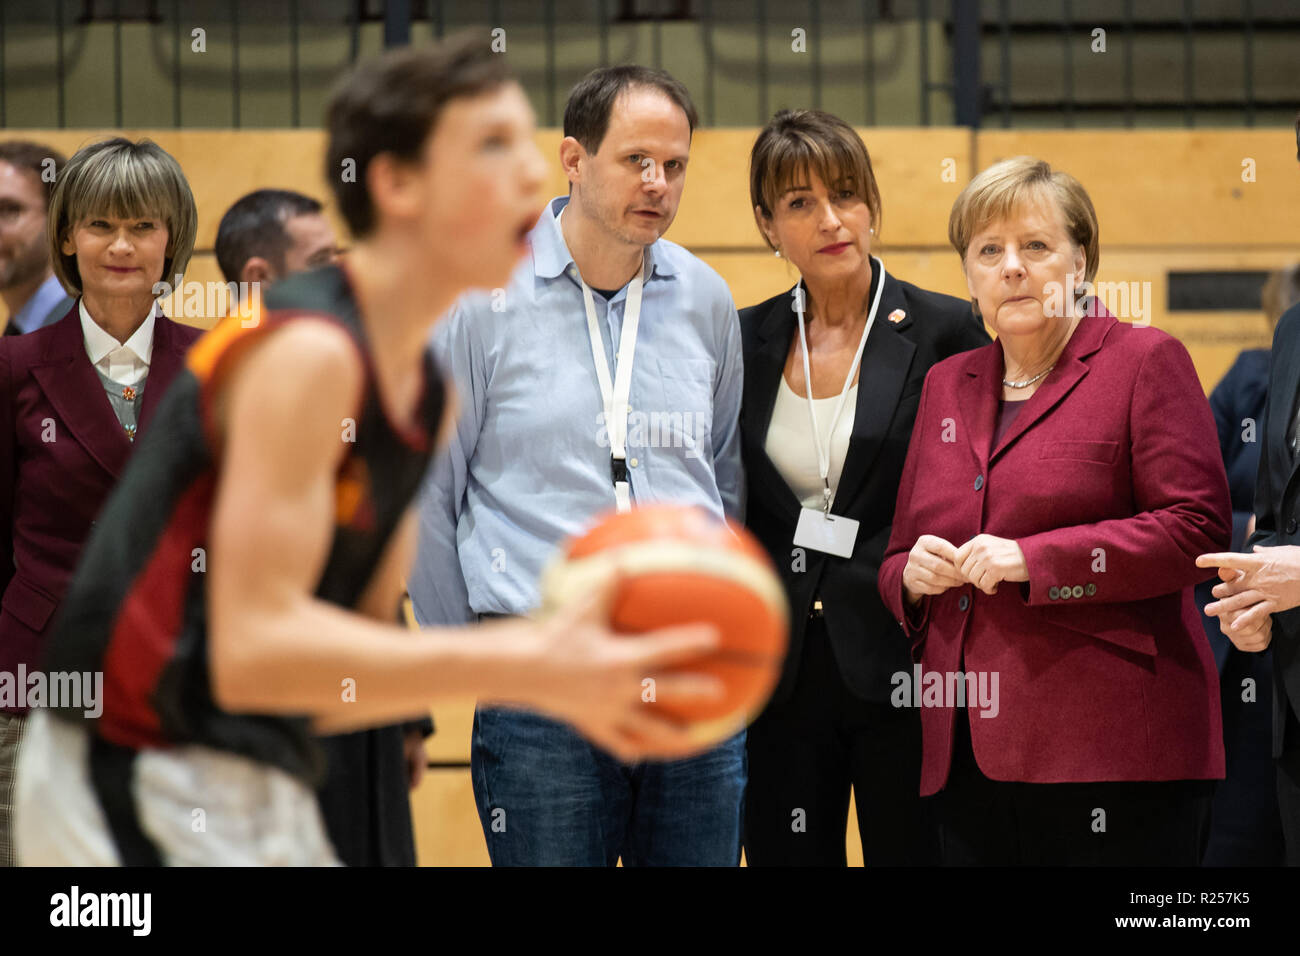 Chemnitz, Germany. 16th Nov, 2018. German Chancellor Angela Merkel (1st R) watches the training of the basketball club Niners Chemnitz during her visit in Chemnitz, eastern Germany, on Nov. 16, 2018. Angela Merkel on Friday clarified her refugee policy during her visit to Chemnitz, a place regarded as the center of several severe xenophobic protests months ago. Credit: Kevin Voigt/Xinhua/Alamy Live News - Stock Image